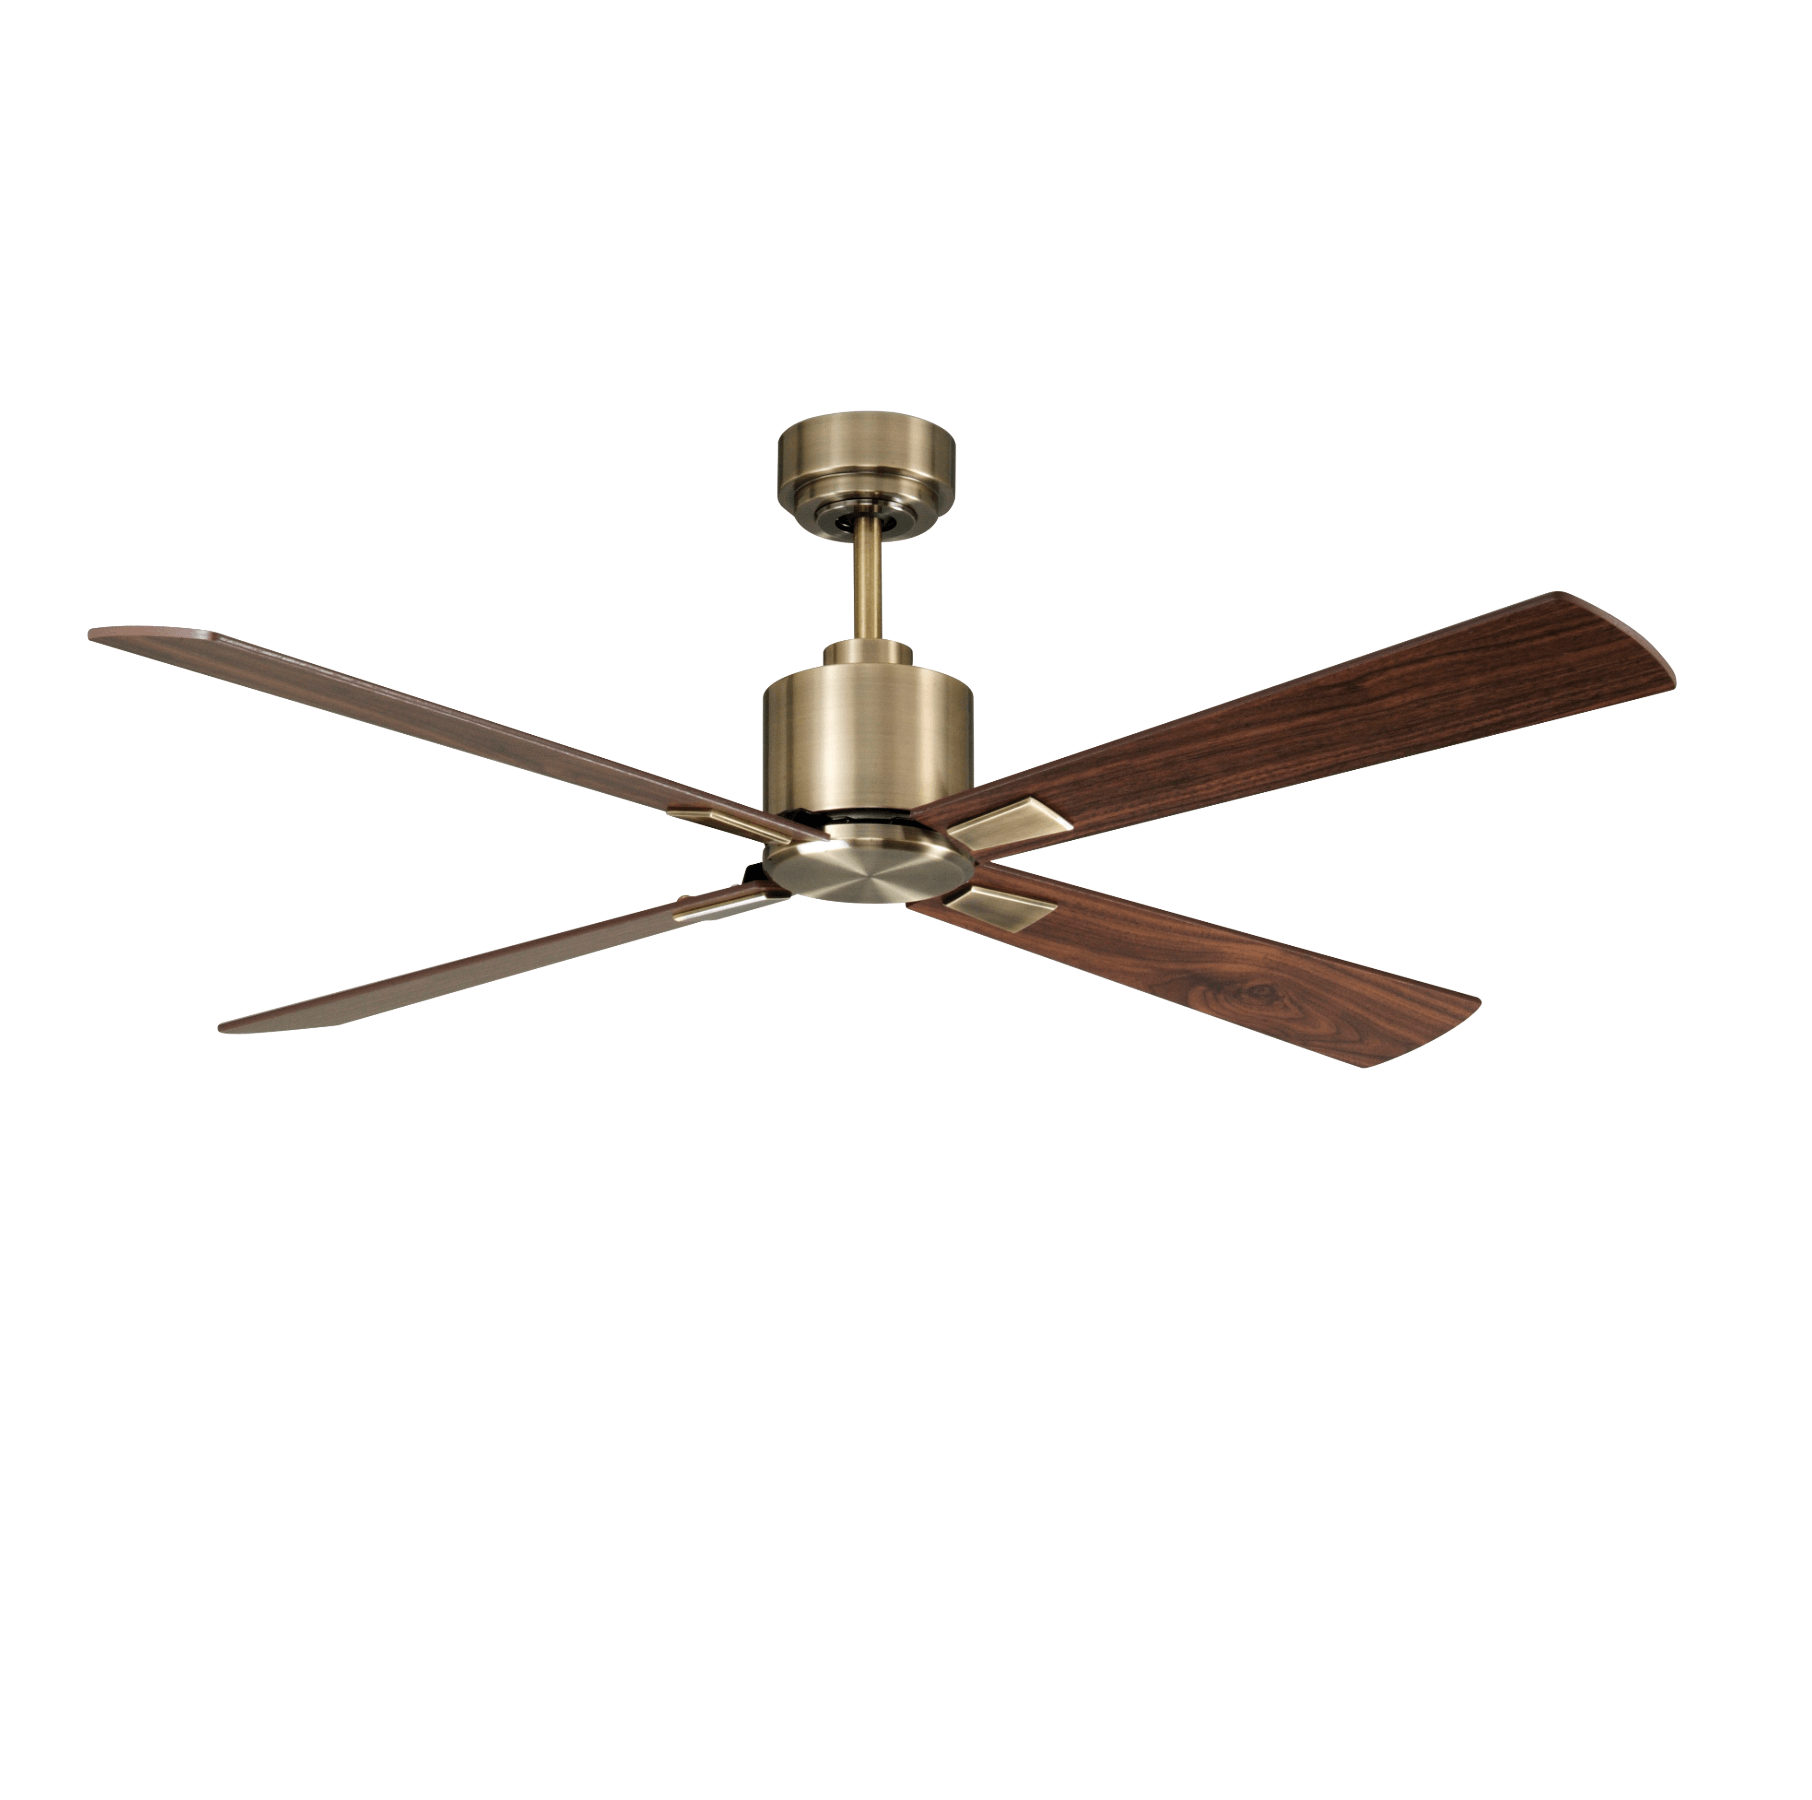 Stropný ventilátor Lucci Air Airfusion Climate DC 210522